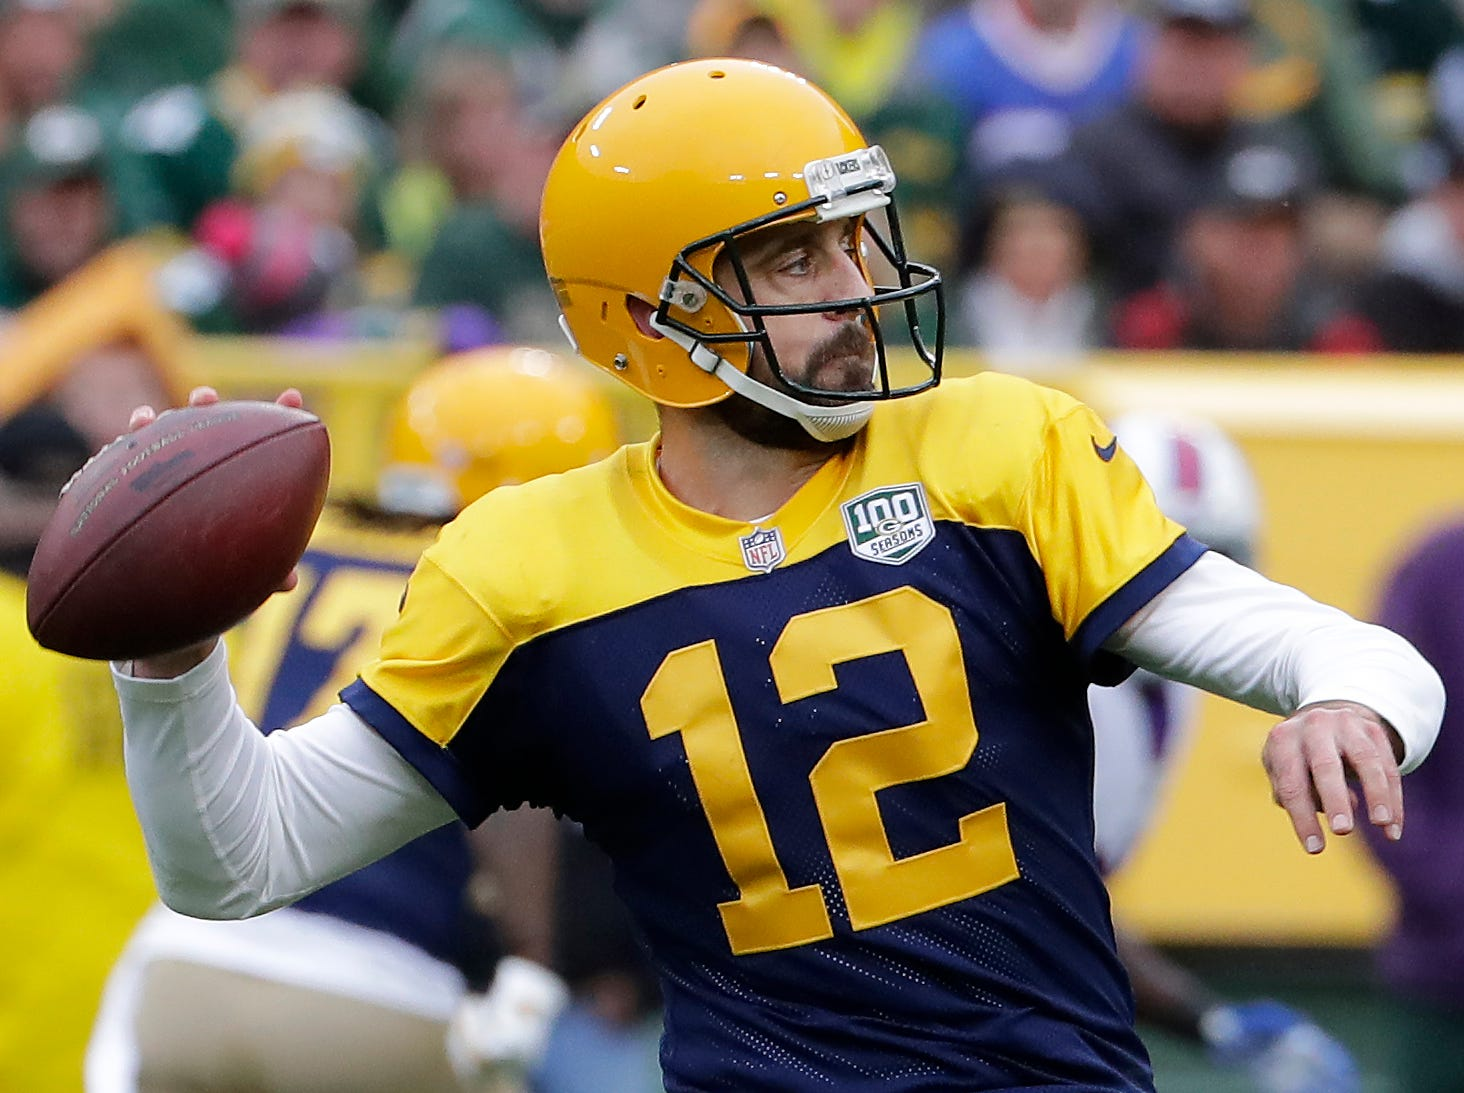 Green Bay Packers quarterback Aaron Rodgers in the second quarter against the Buffalo Bills on Sunday, September 30, 2018, at Lambeau Field in Green Bay, Wis. Wm. Glasheen/USA TODAY NETWORK-Wisconsin.